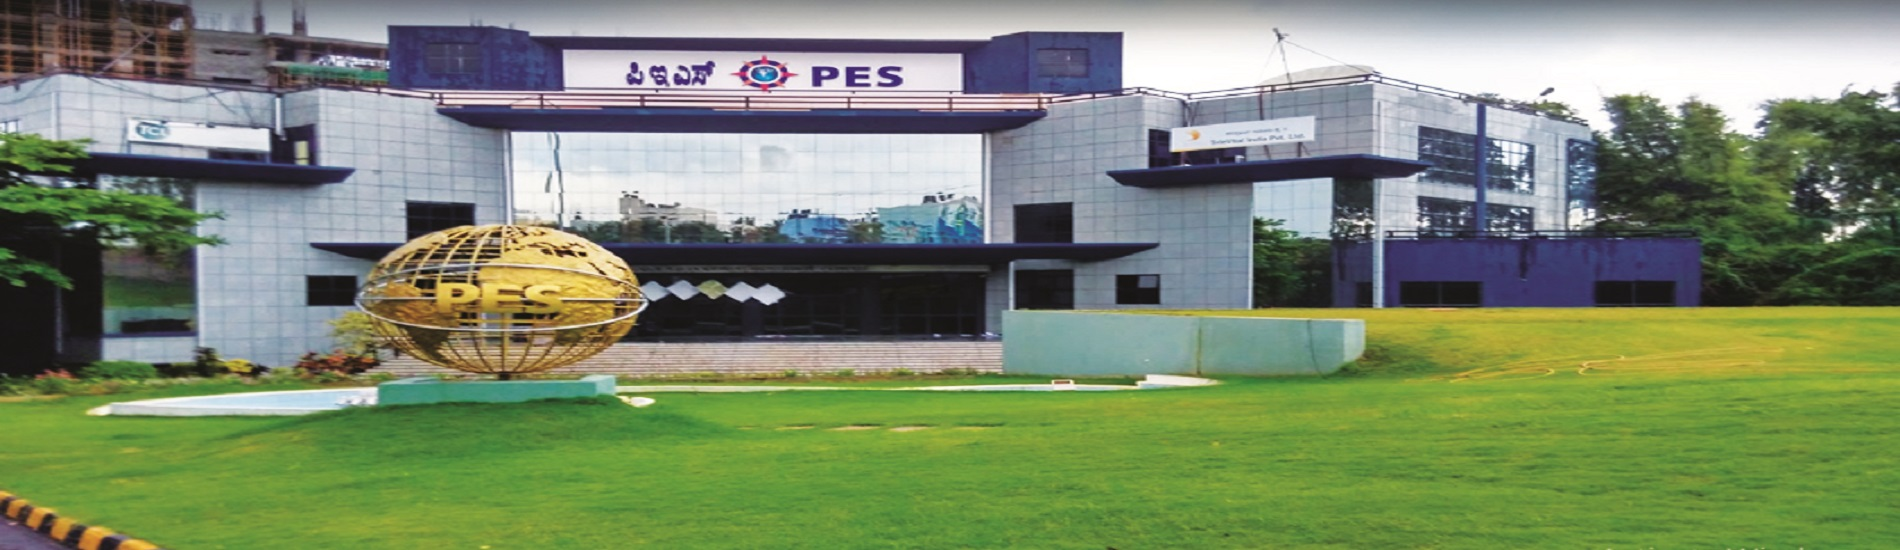 pes-institute-of-technology-pesit-hostel-fee-structure